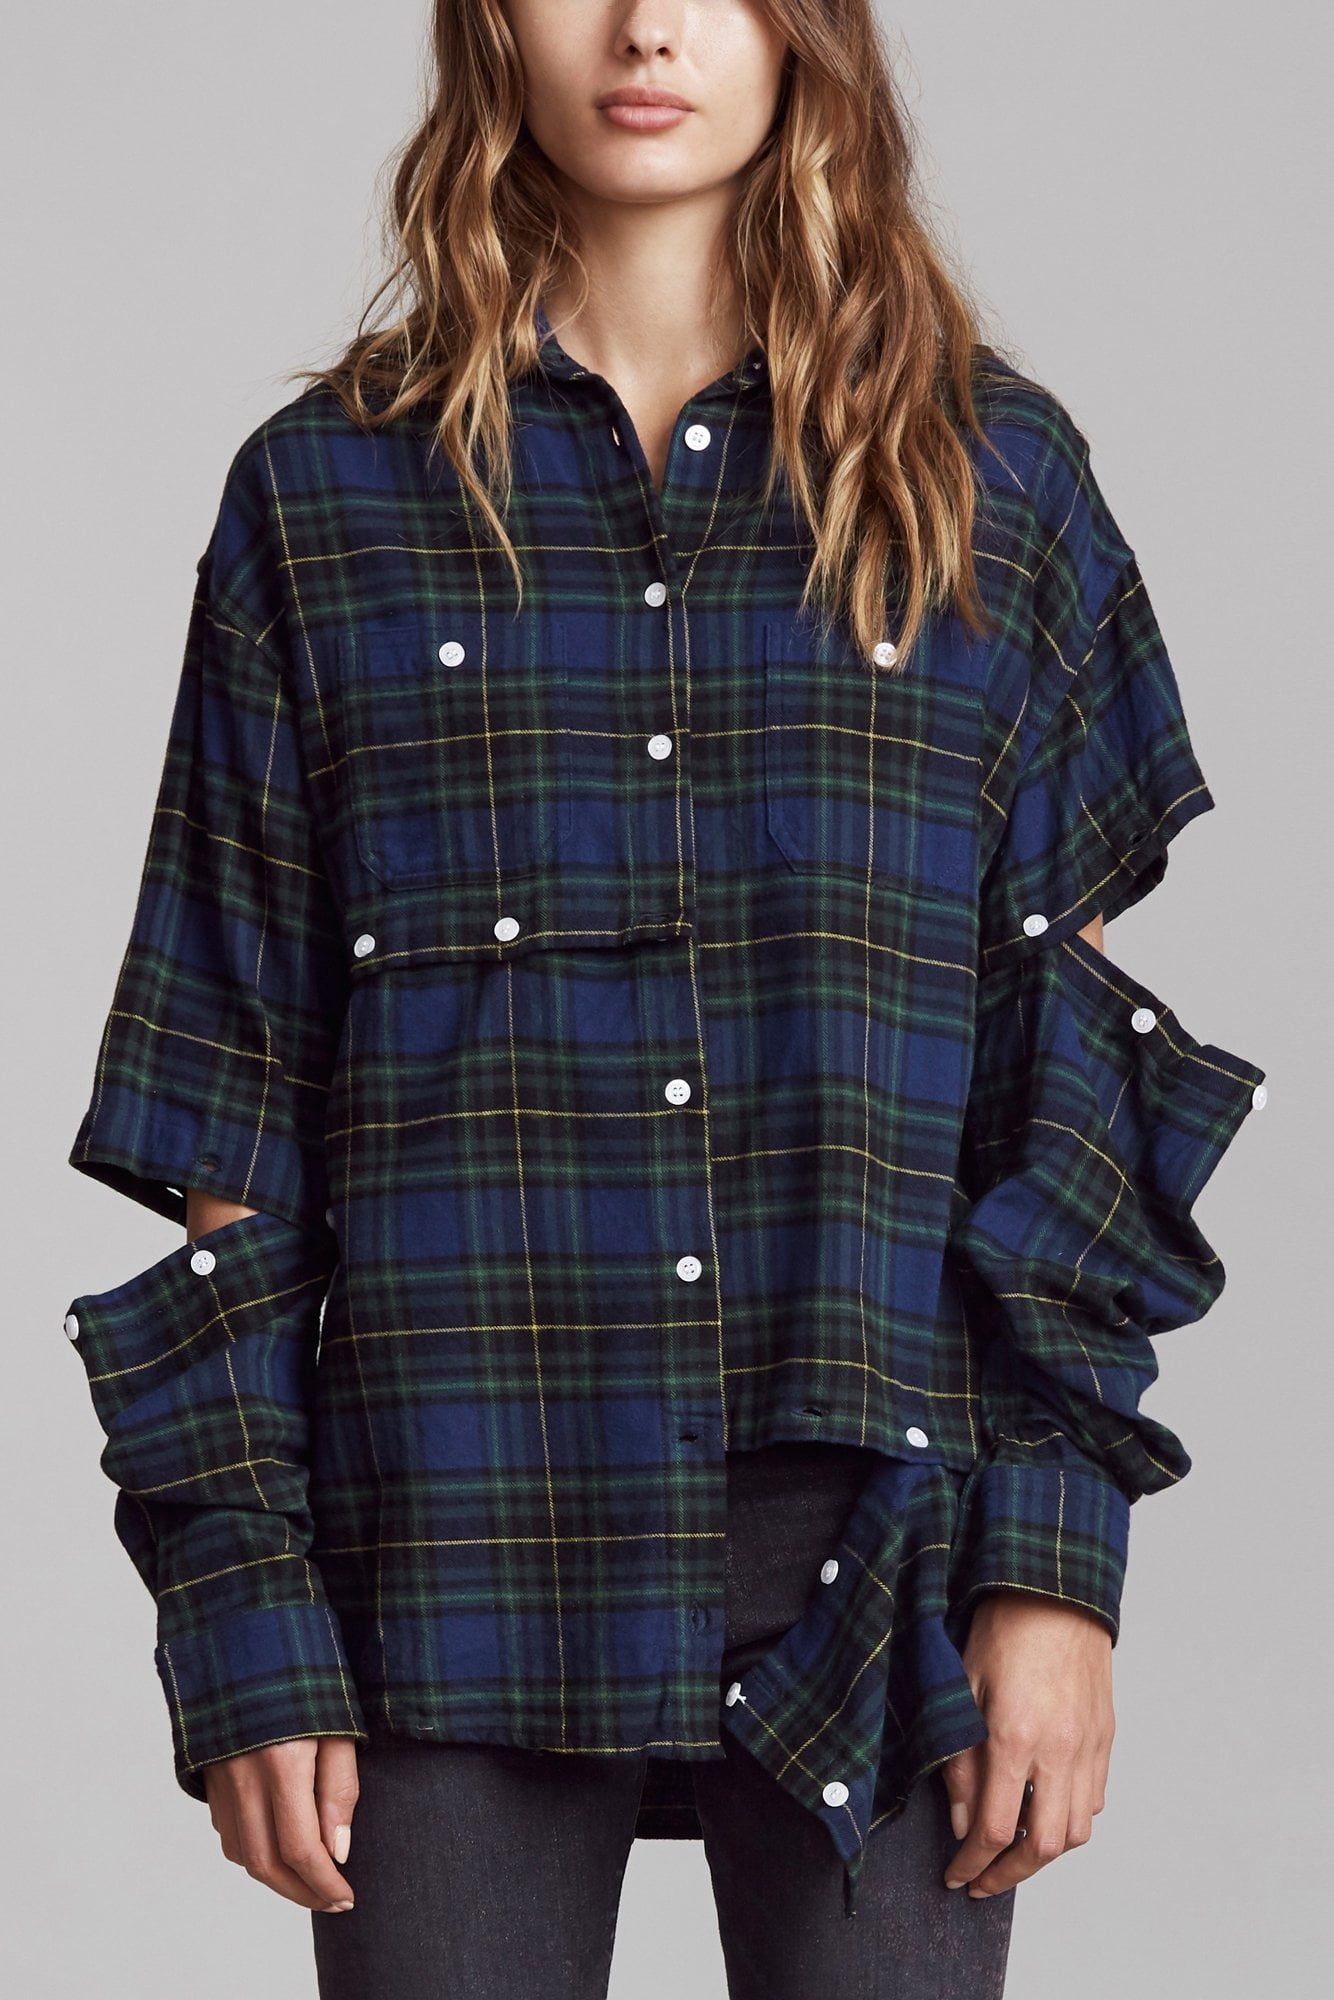 Undone Shirt - Blue and Green Plaid